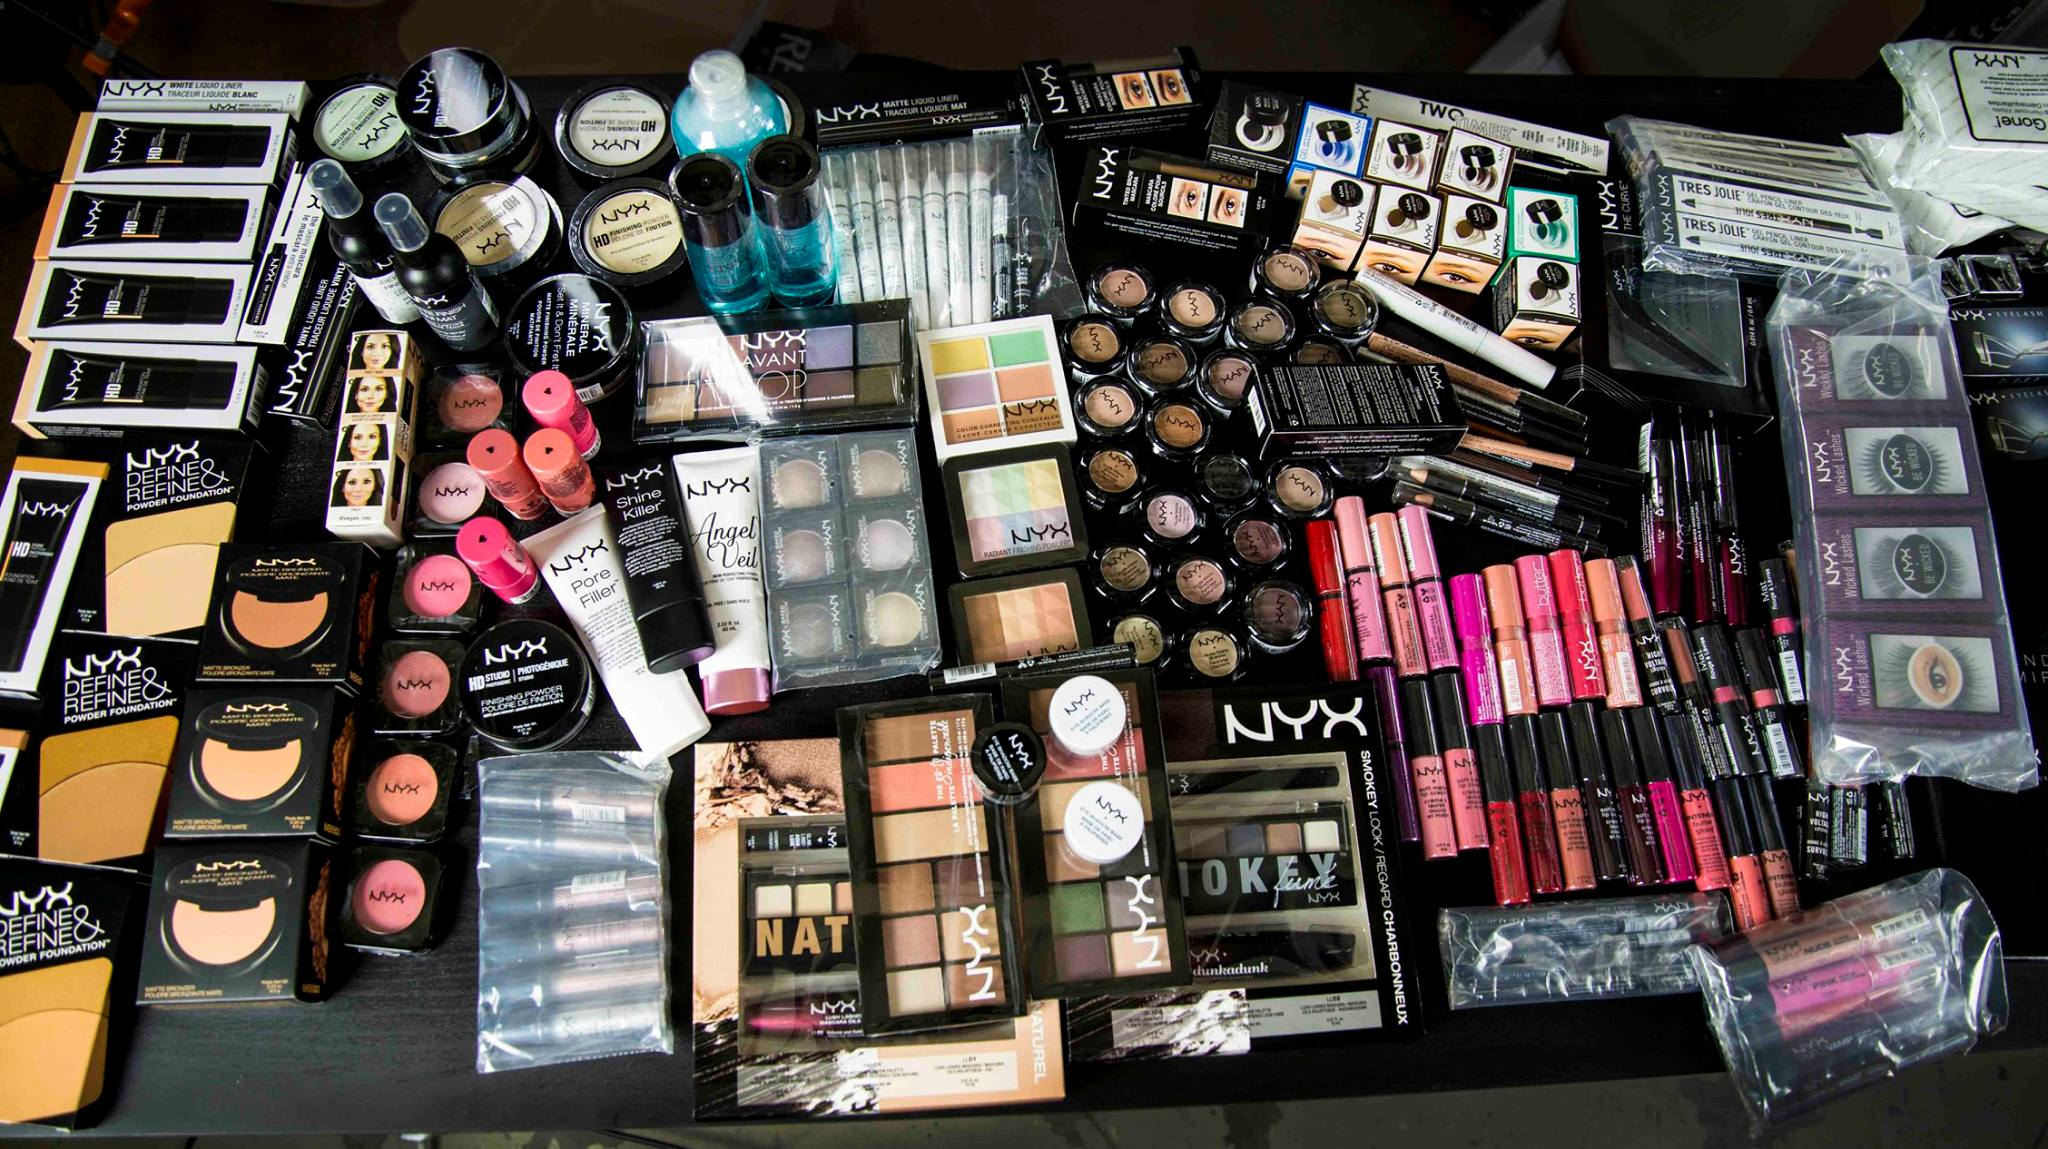 Only 2/3 of all the products could fit in this photo!